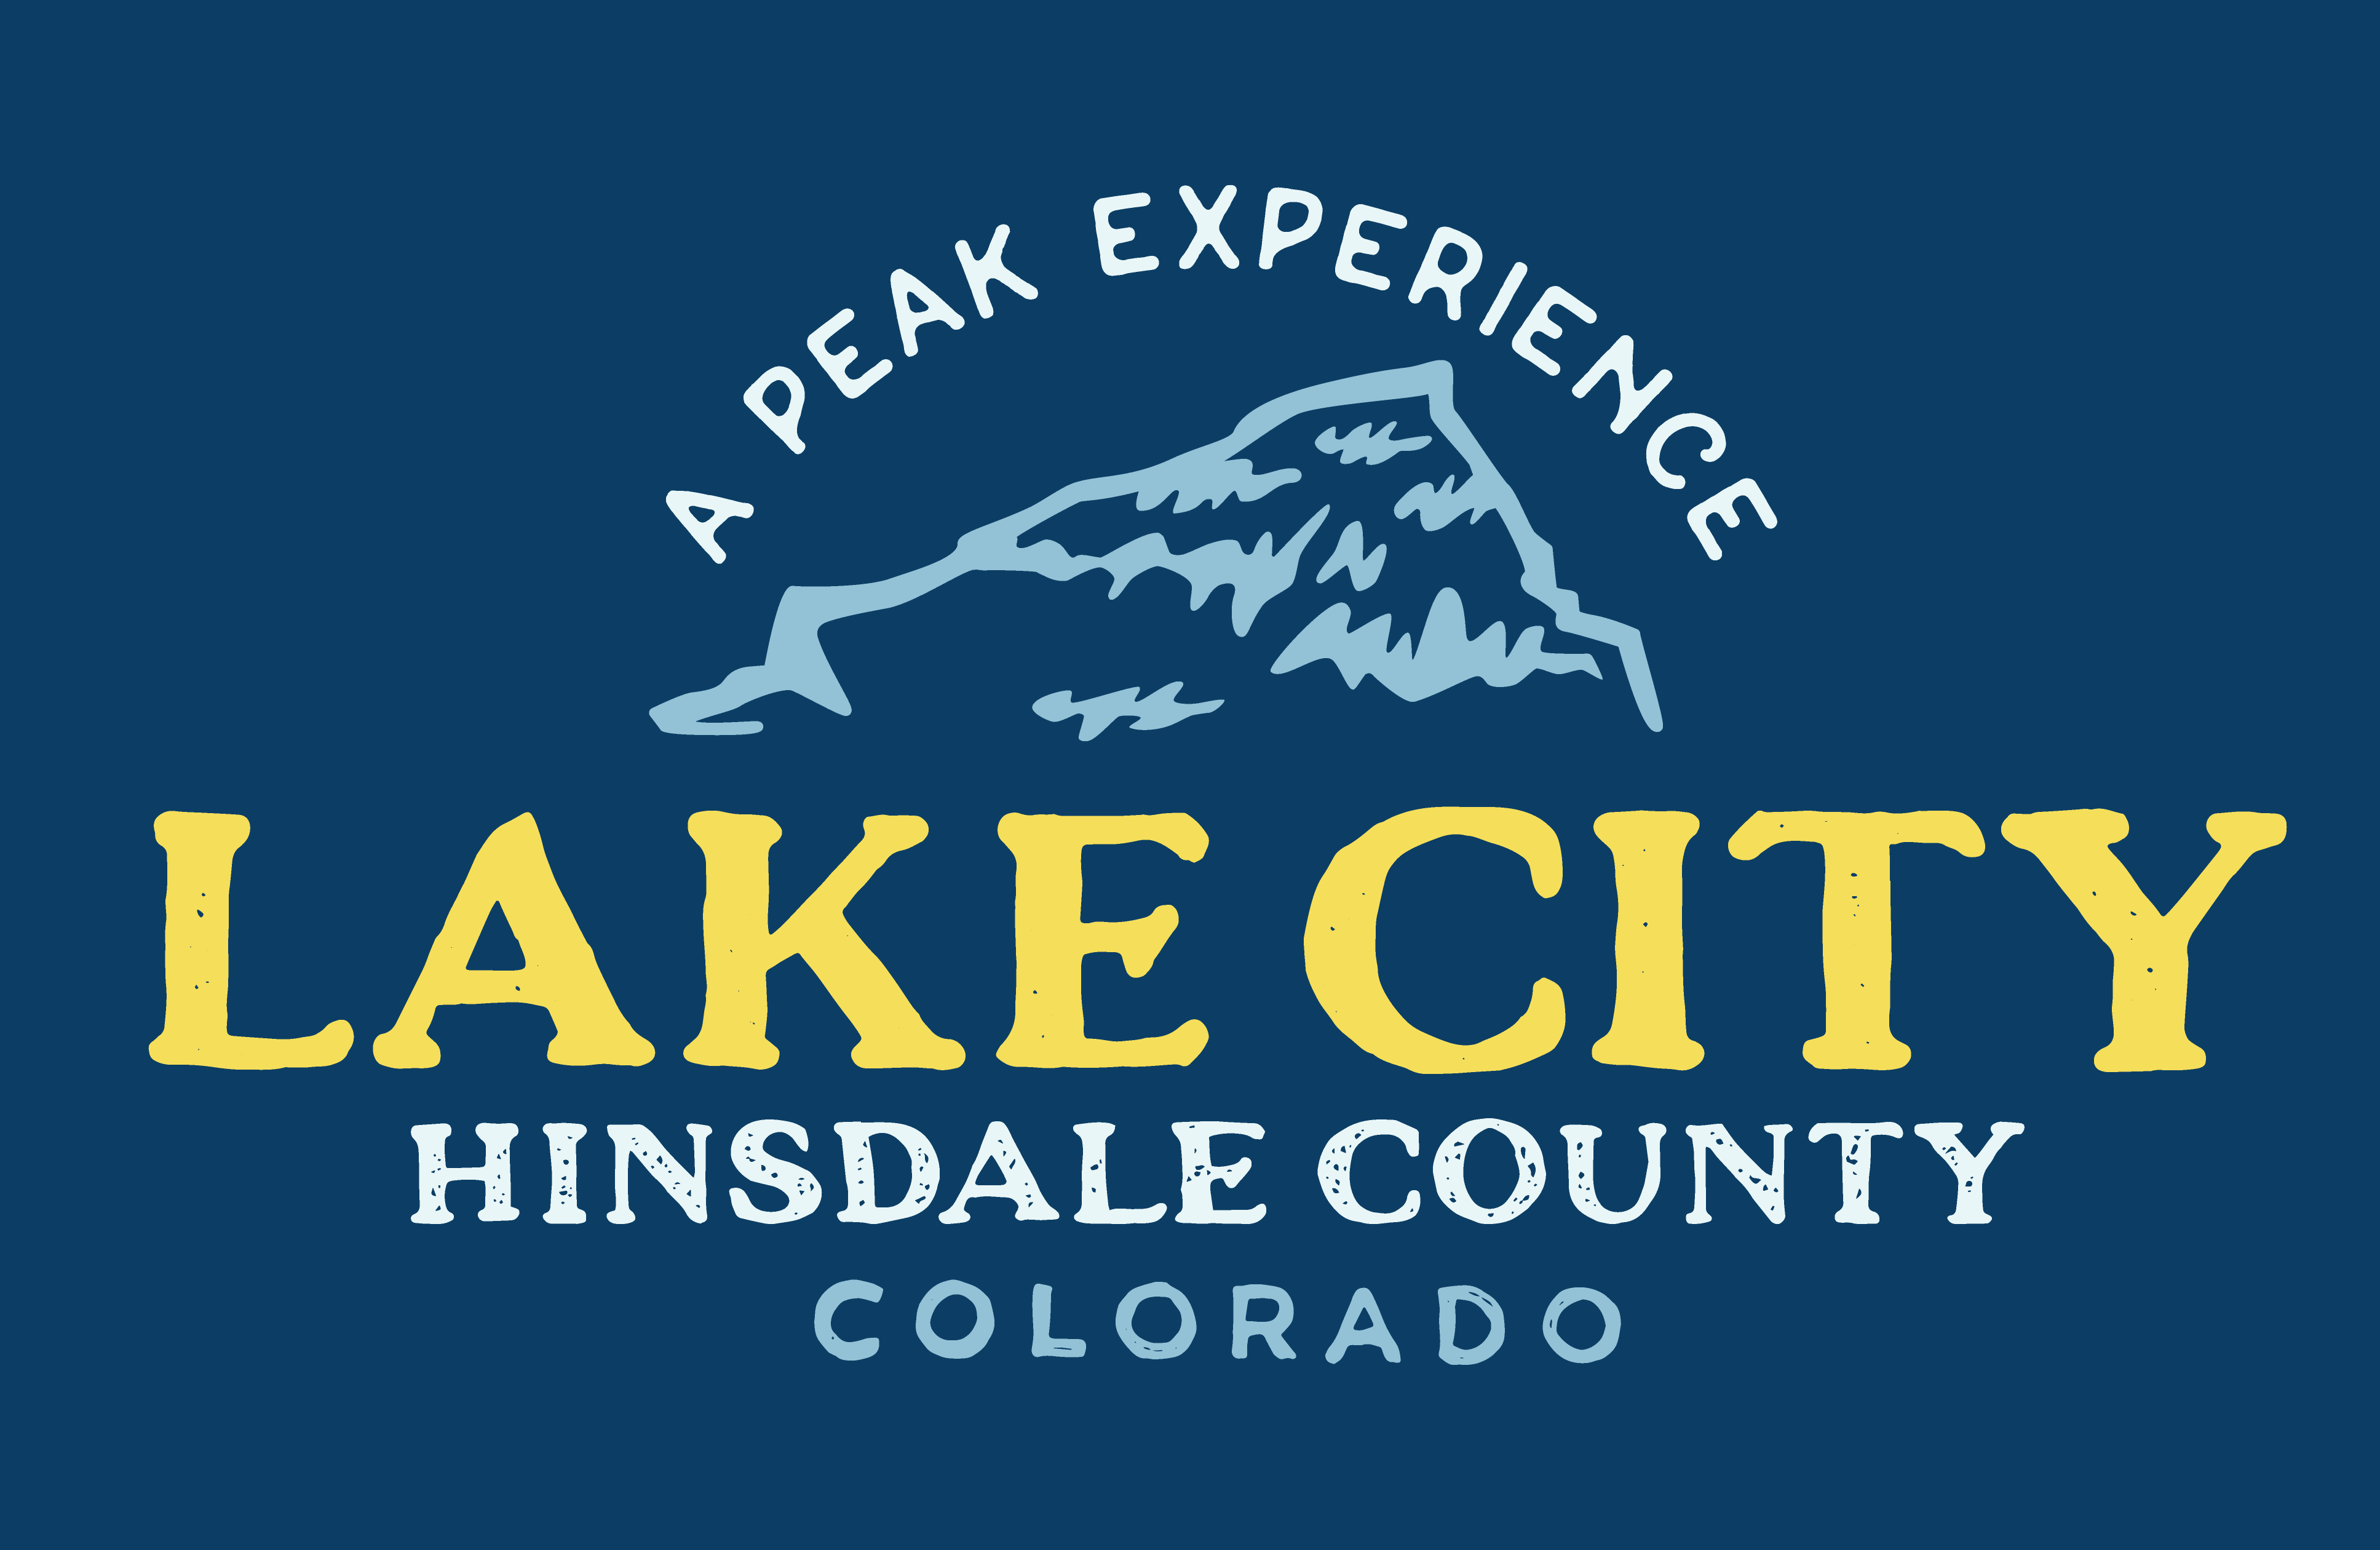 Lake City - A Peak Experience